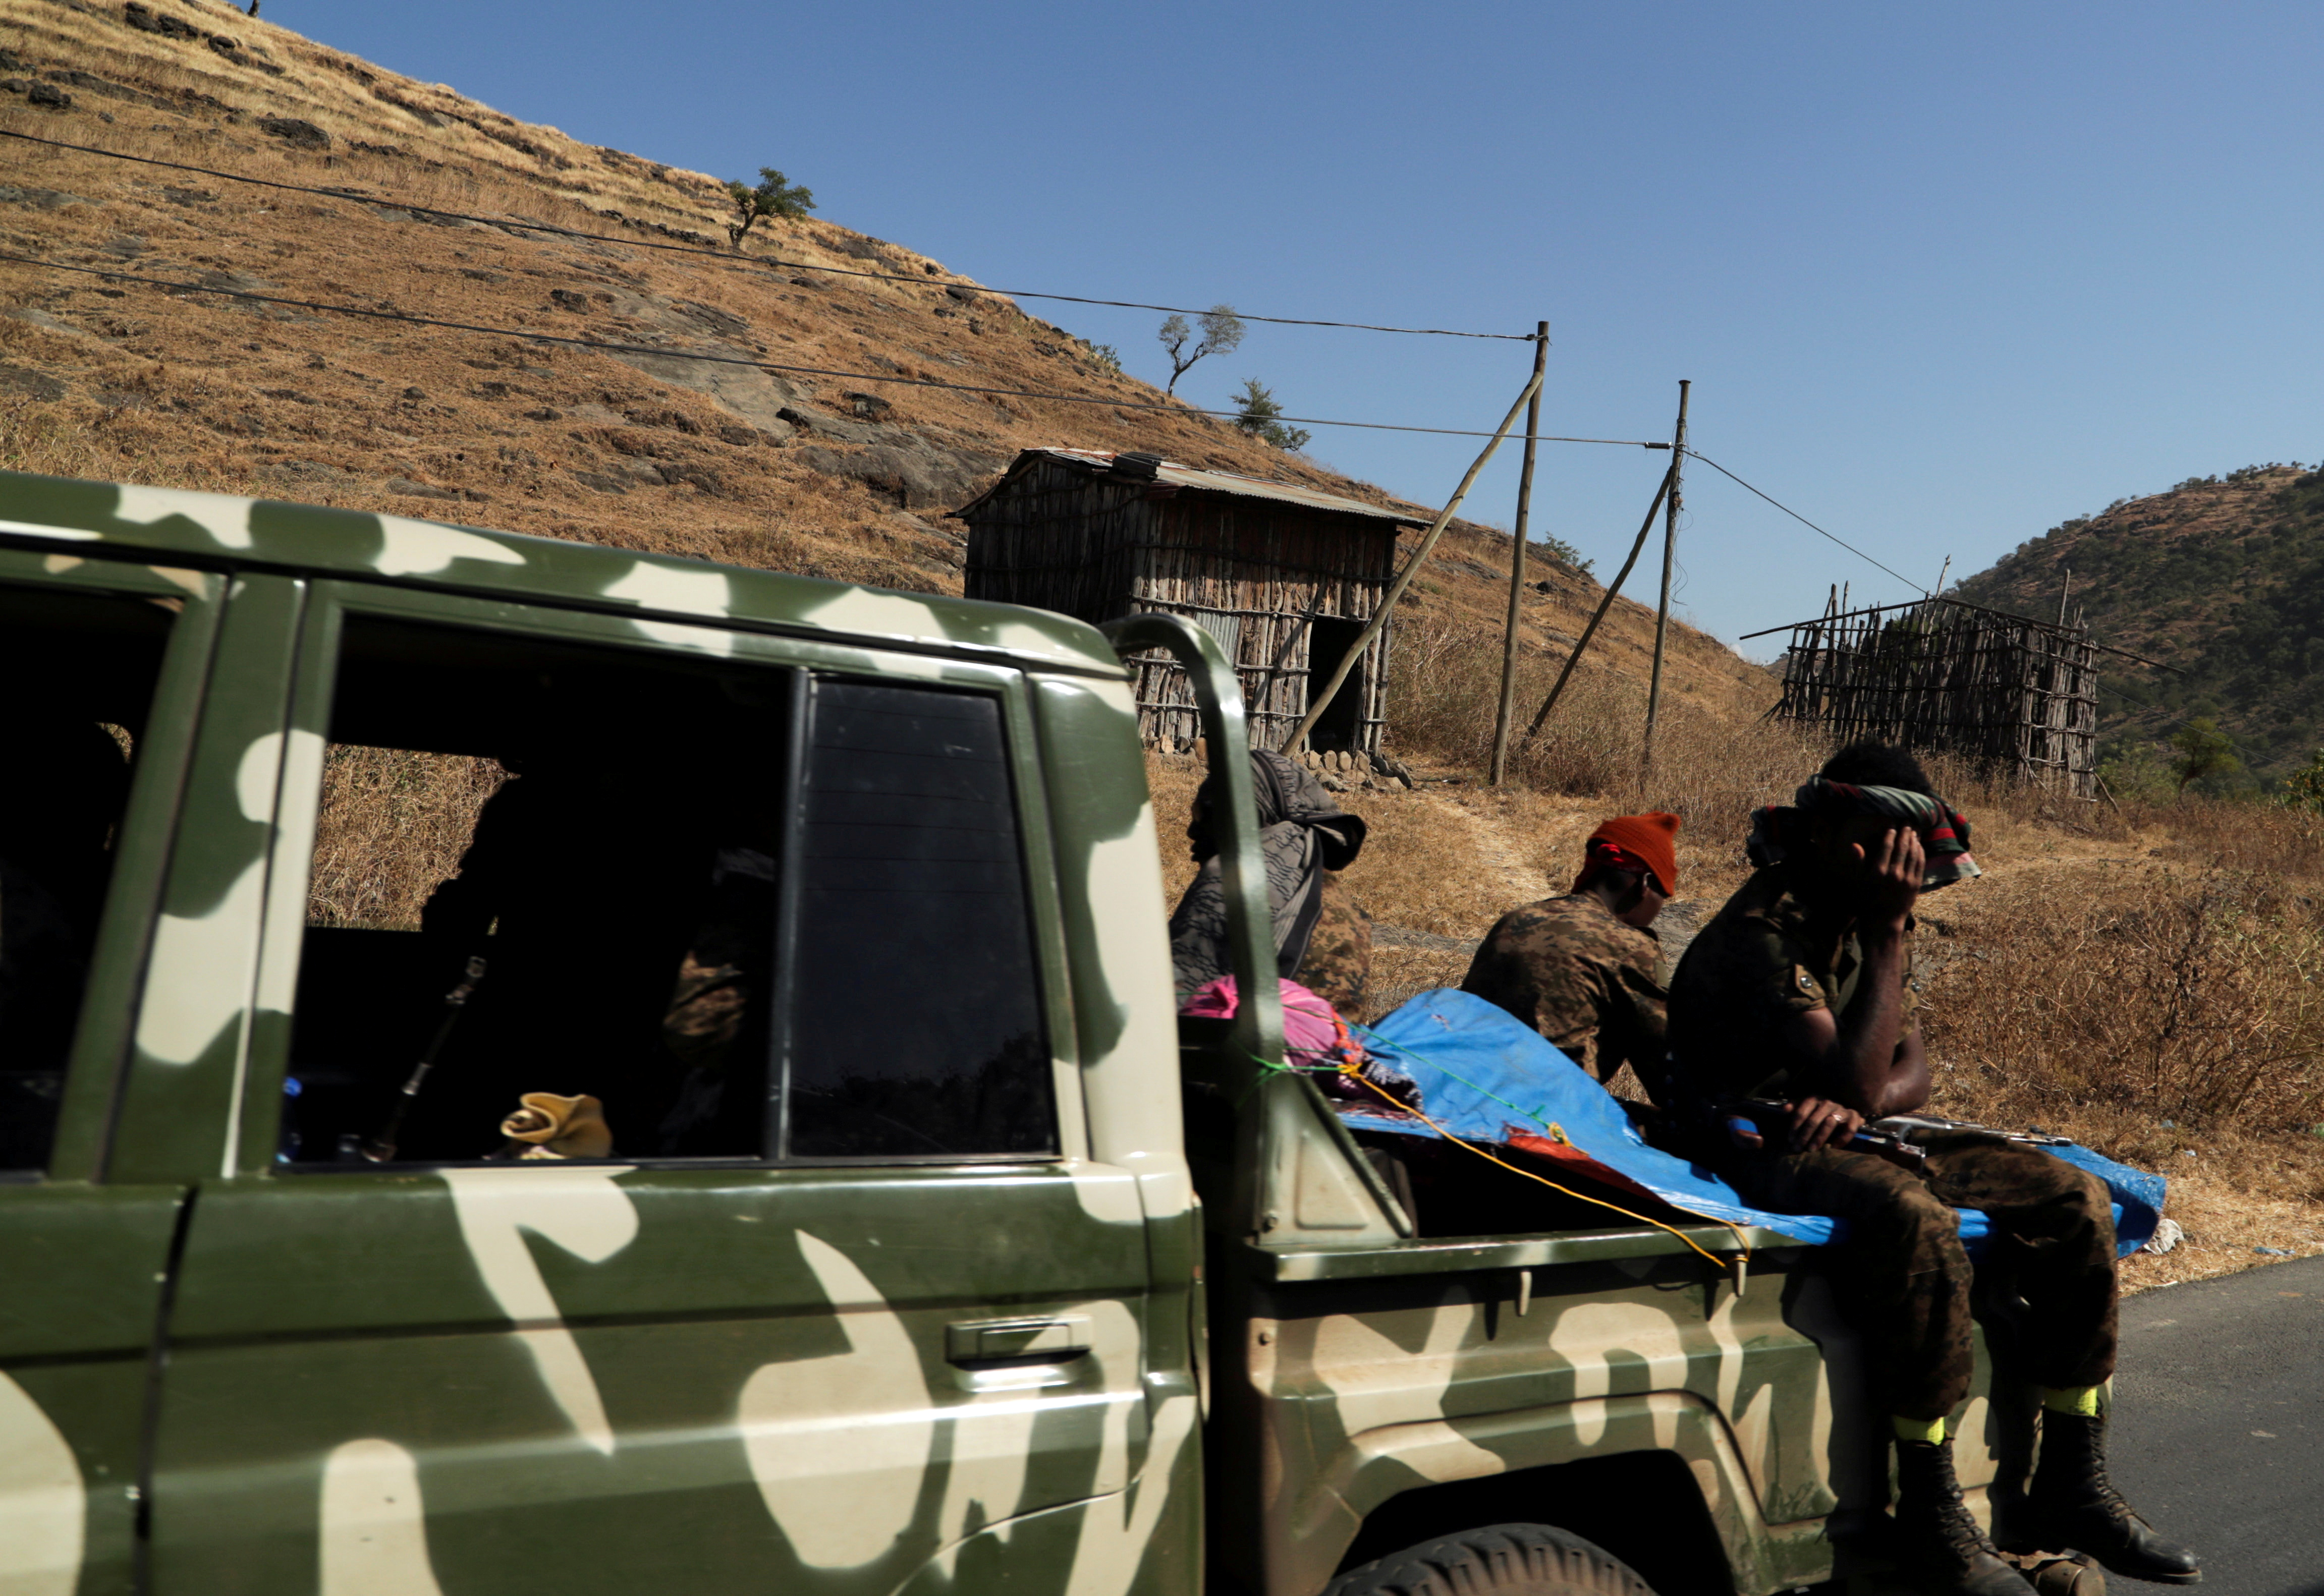 Members of the Ethiopian National Defense Force (ENDF) ride on their pickup truck as they head to mission in Sanja, Amhara region, near a border with Tigray, Ethiopia November 9, 2020. REUTERS/Tiksa Negeri/File Photo